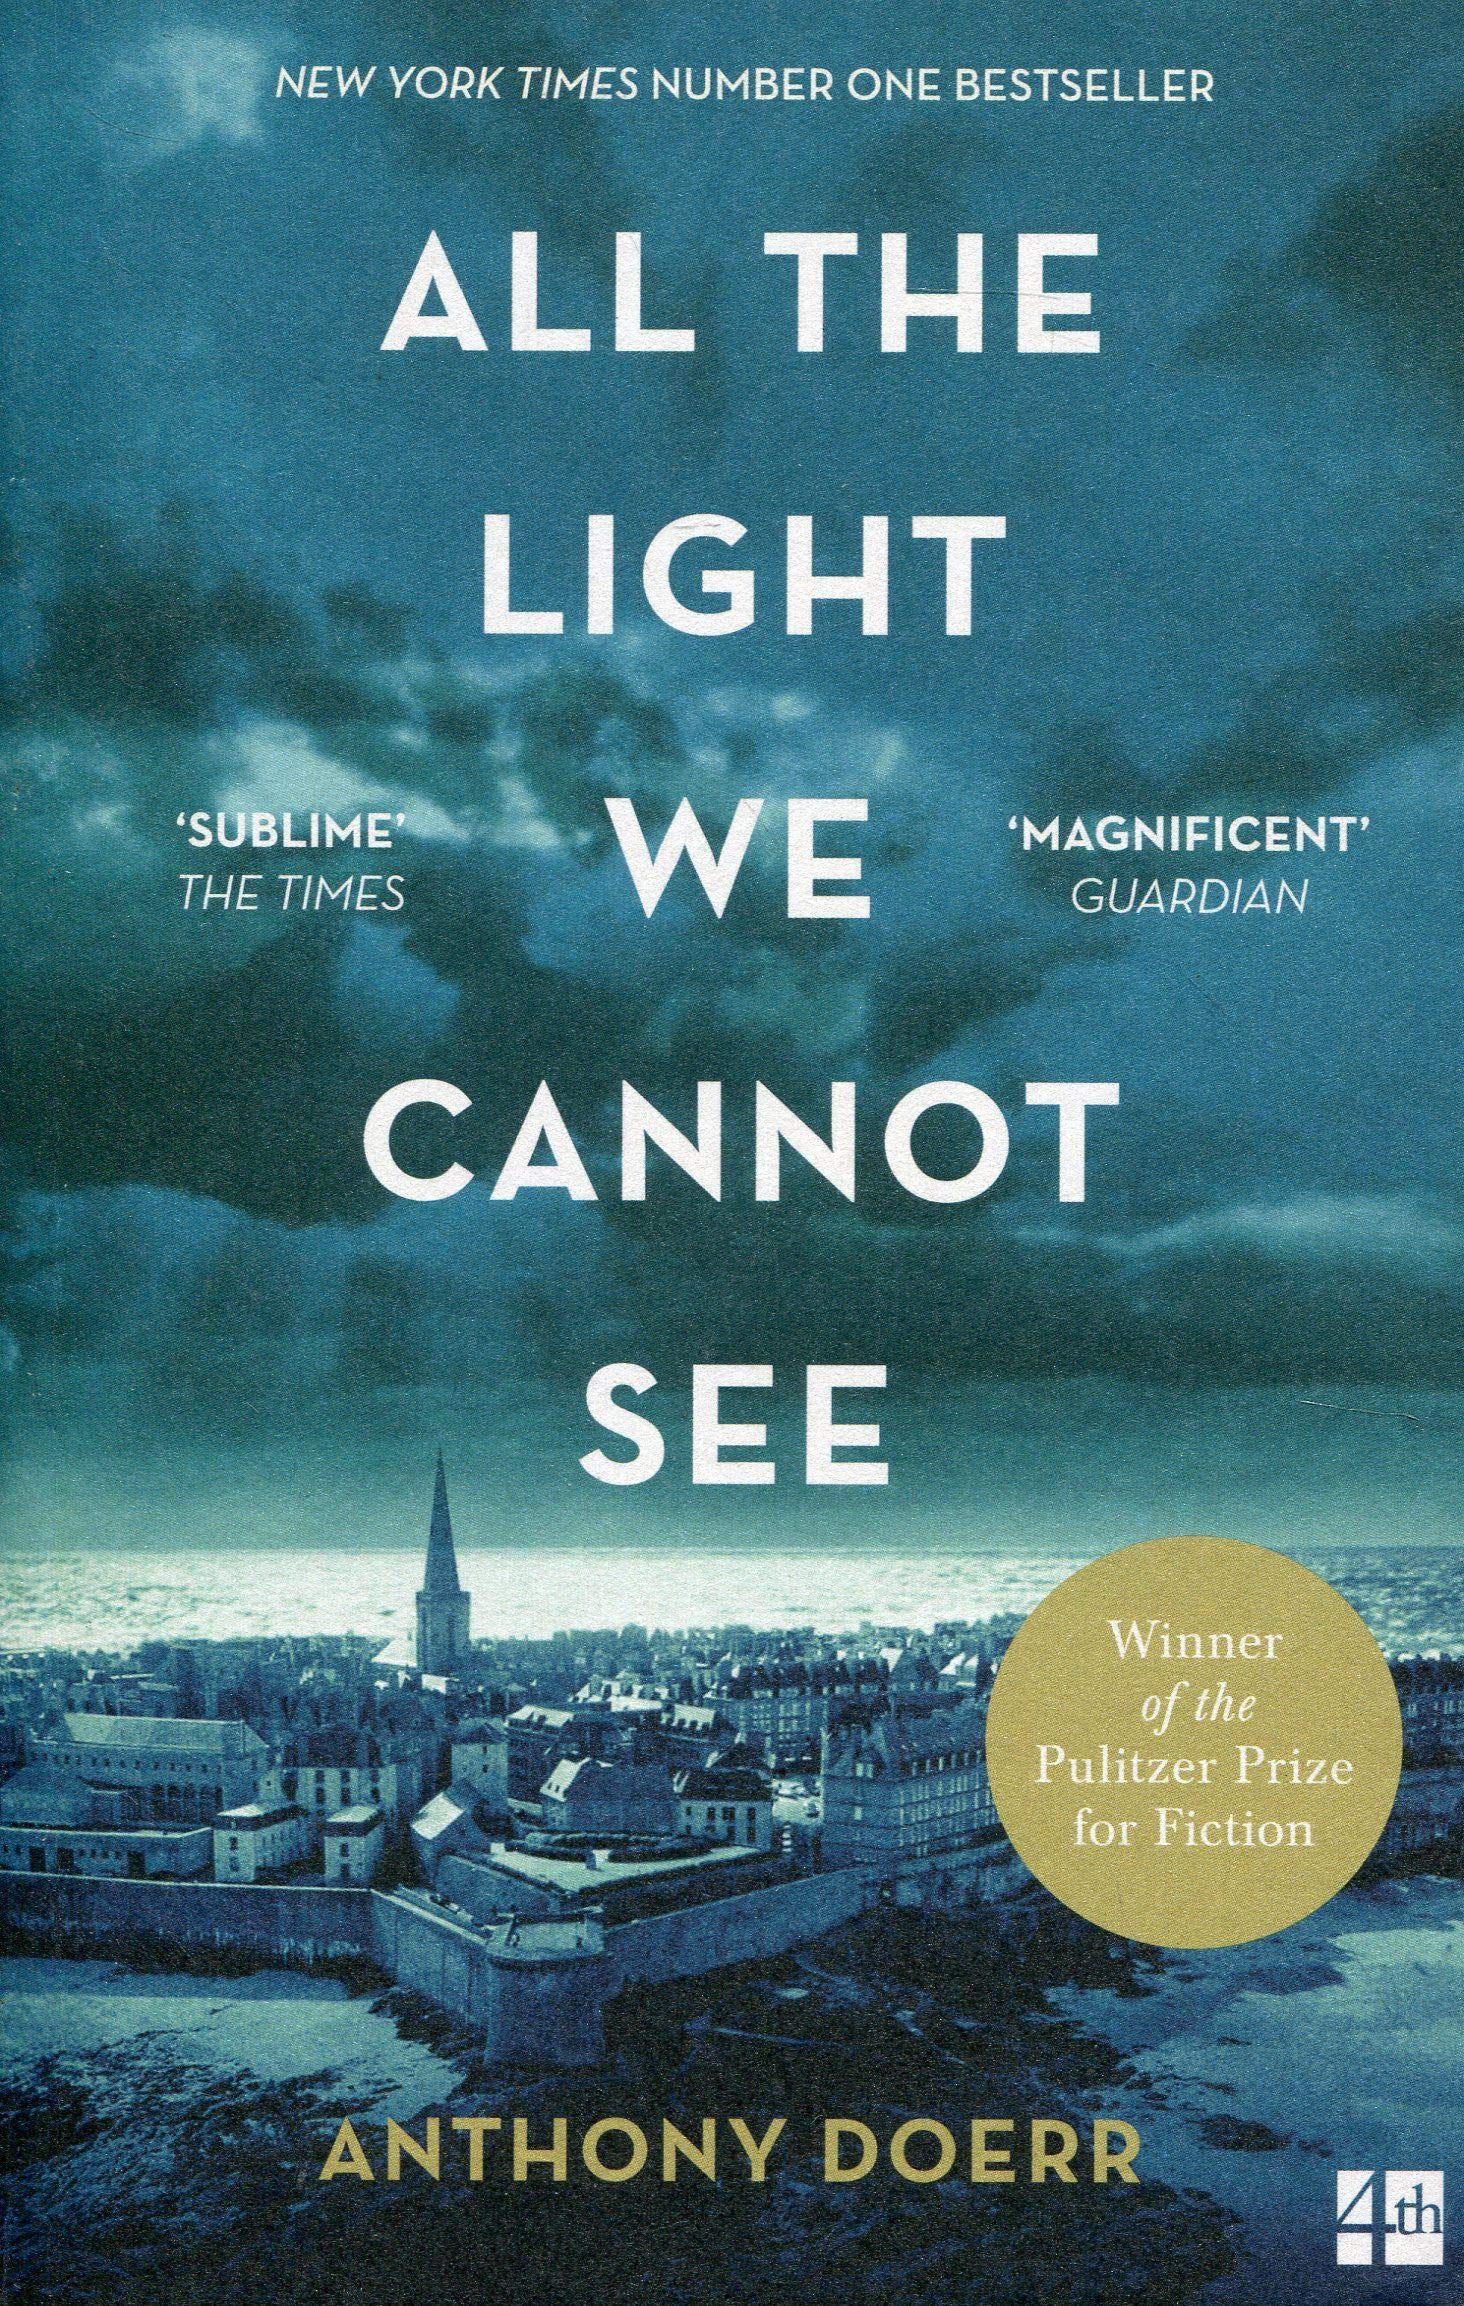 Book cover of 'All the Light We Cannot See'. Cover shows a coastal town with clouds in the sky \'96 it is dark and dreary. A sticker on the cover reads 'Winner of the Pulitzer Prize for Fiction'.